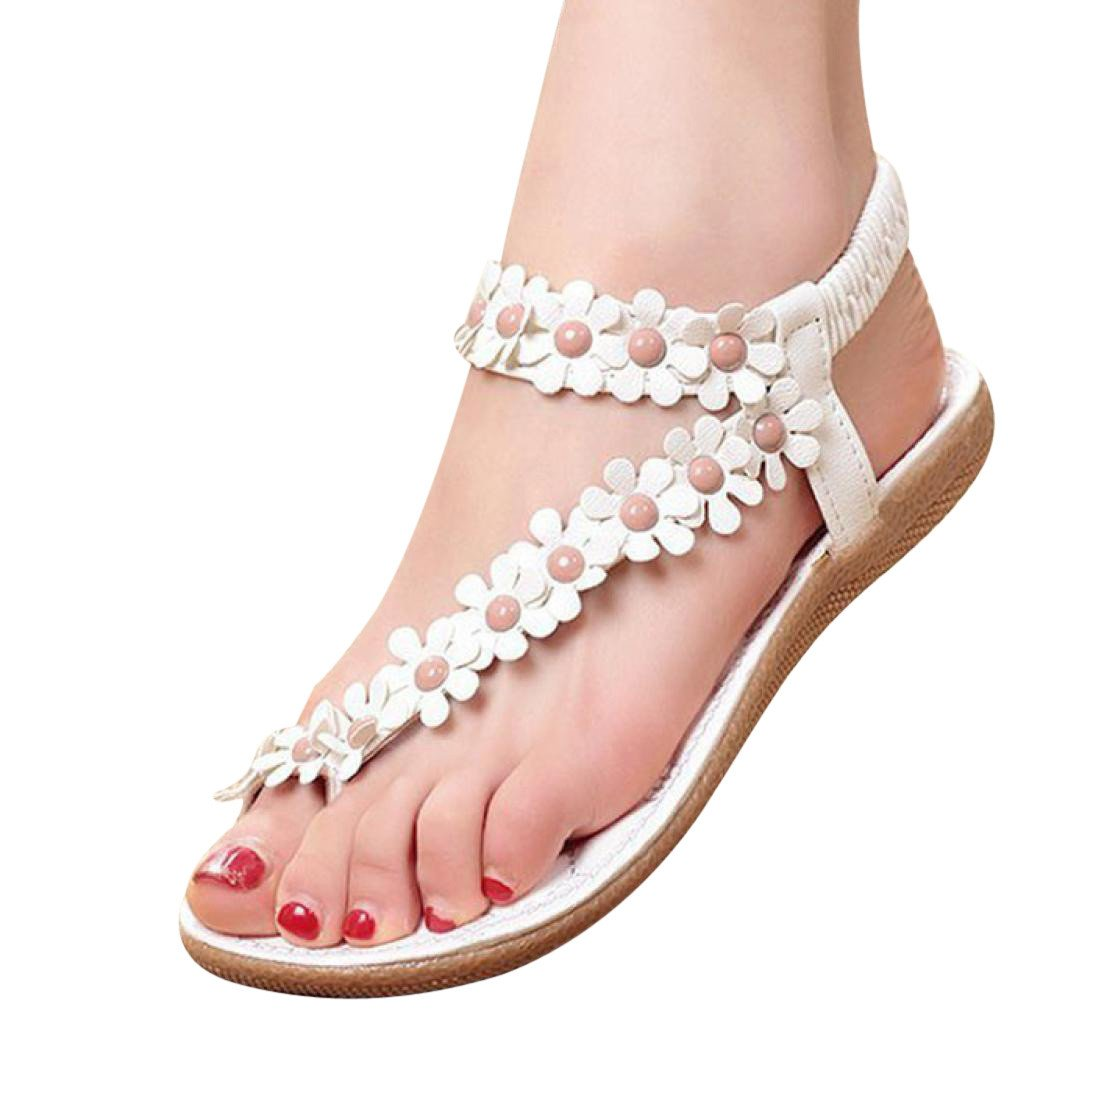 Corriee Bohemia Sandals for Women Summer Leisure Clip Toe Beaded Sandals Cute Holiday Beach Shoes